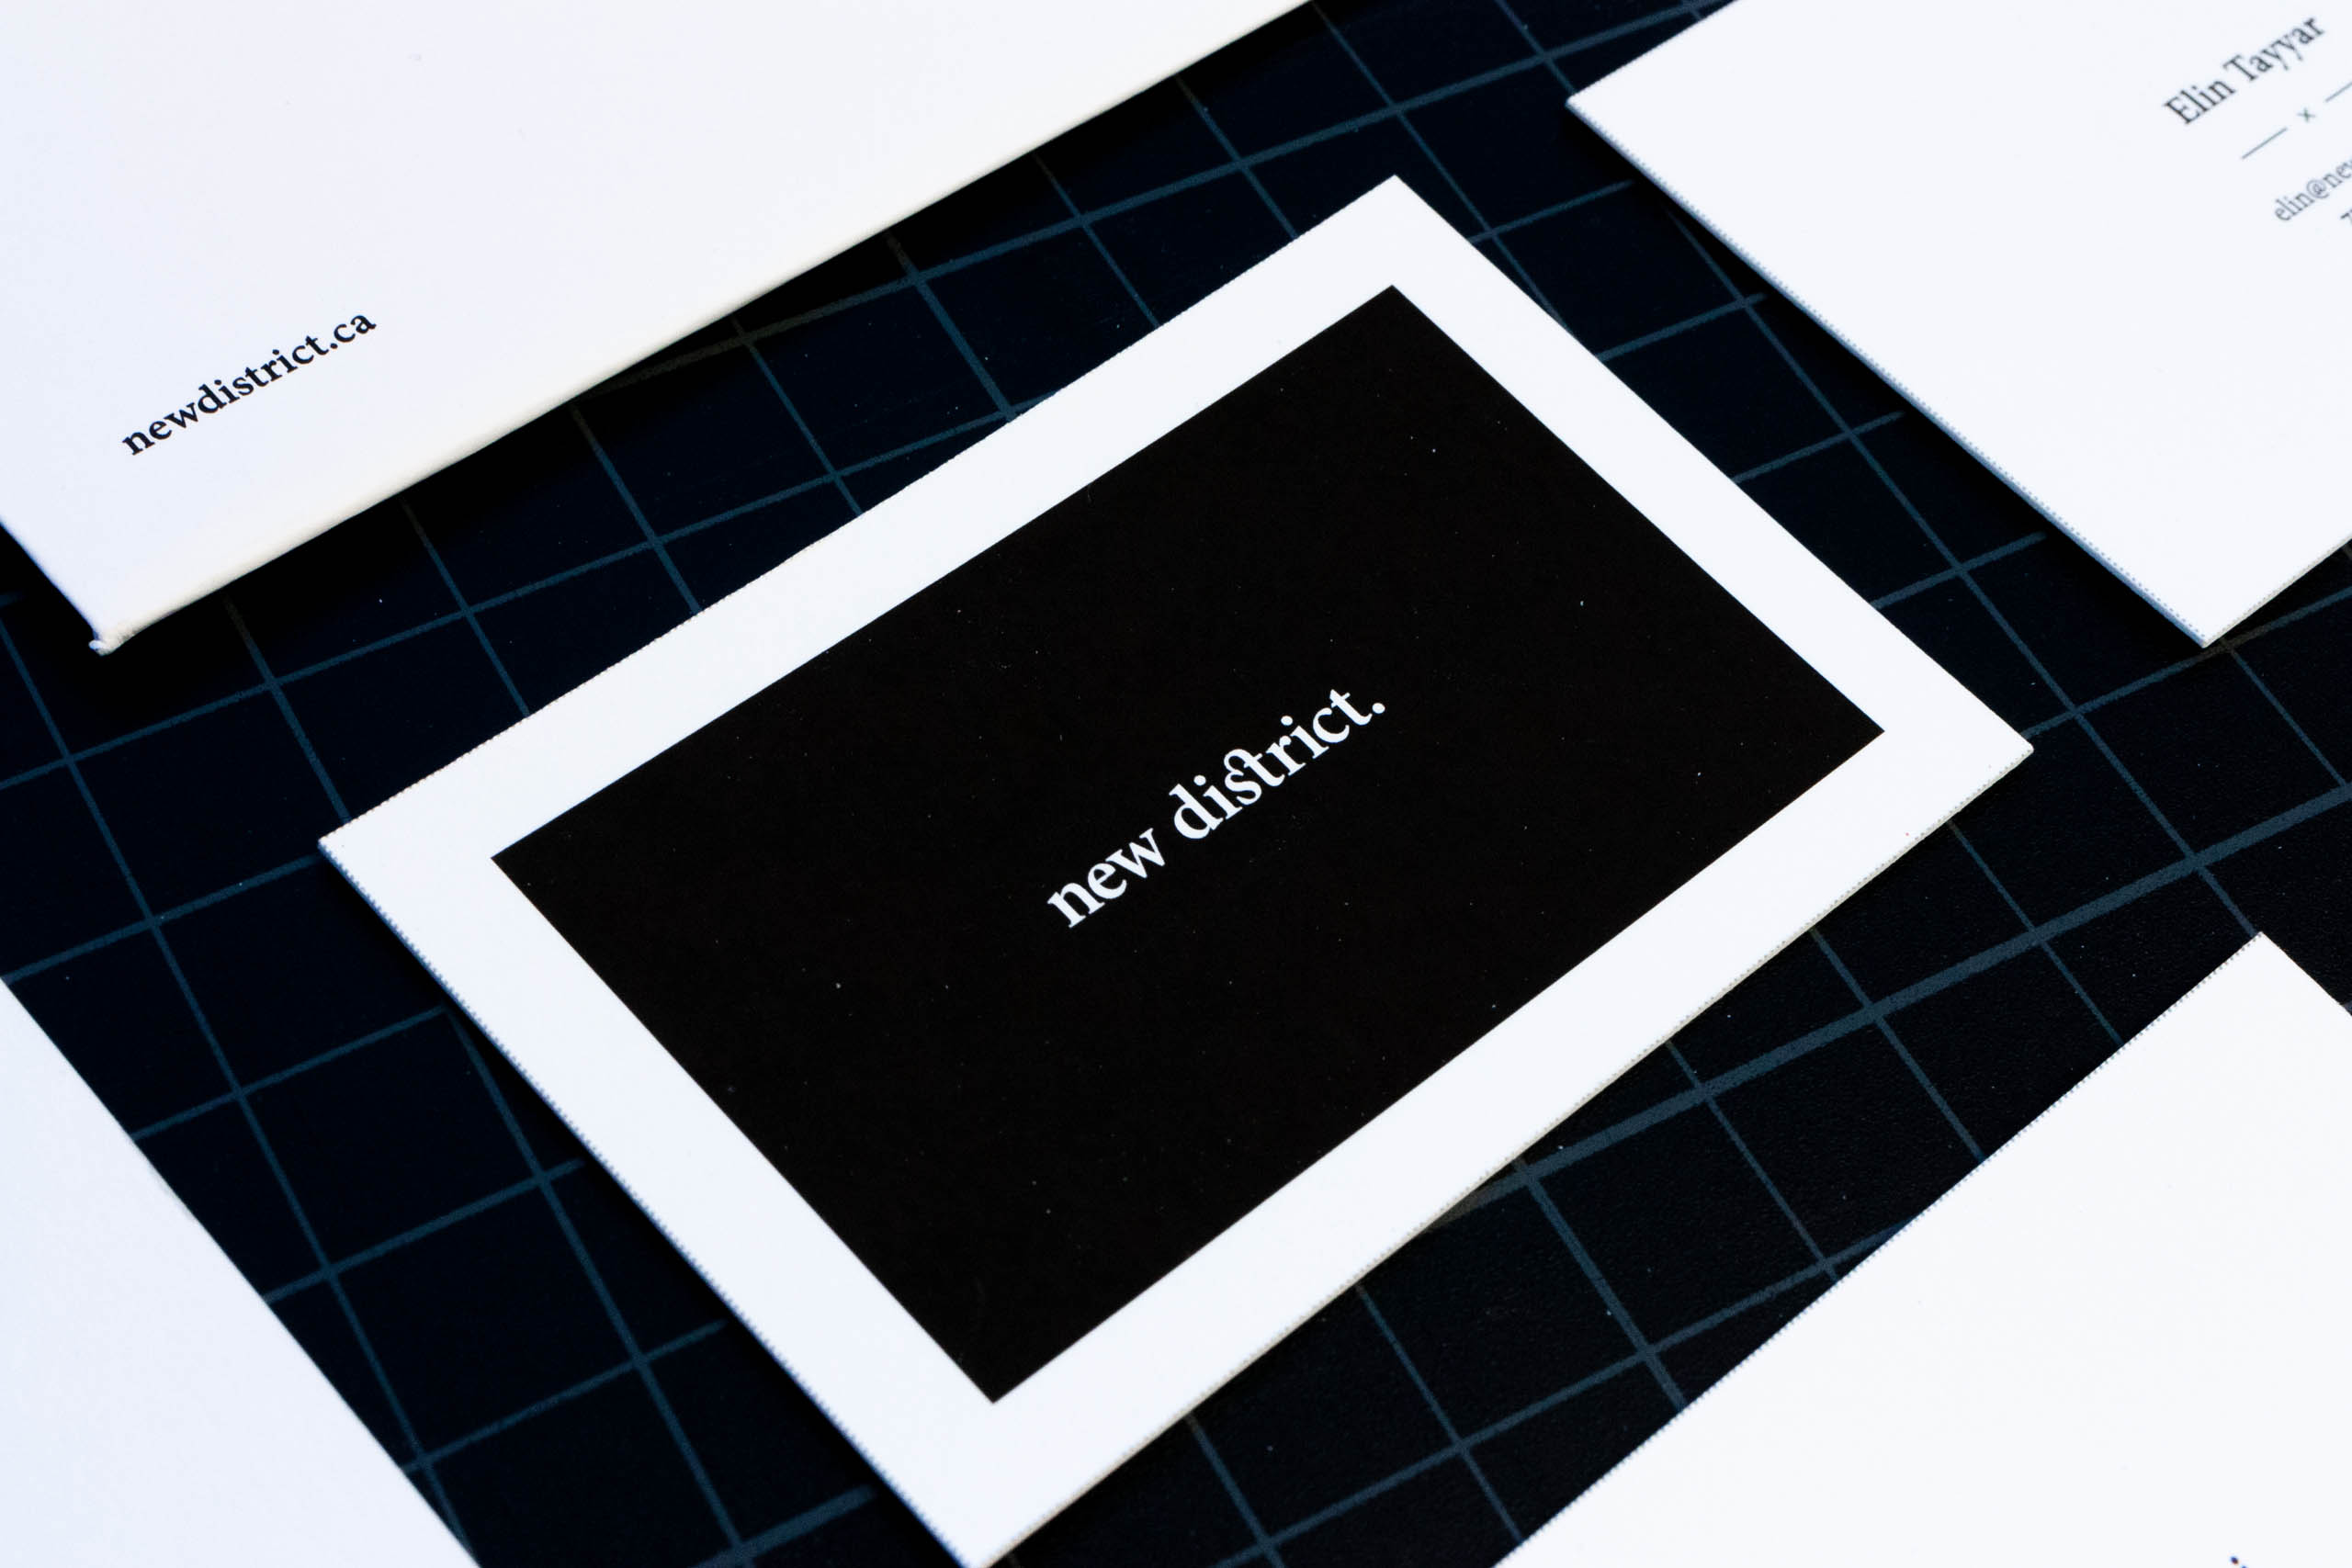 Back of New District business card with the logo in white over a black framed background — by Yagnyuk.